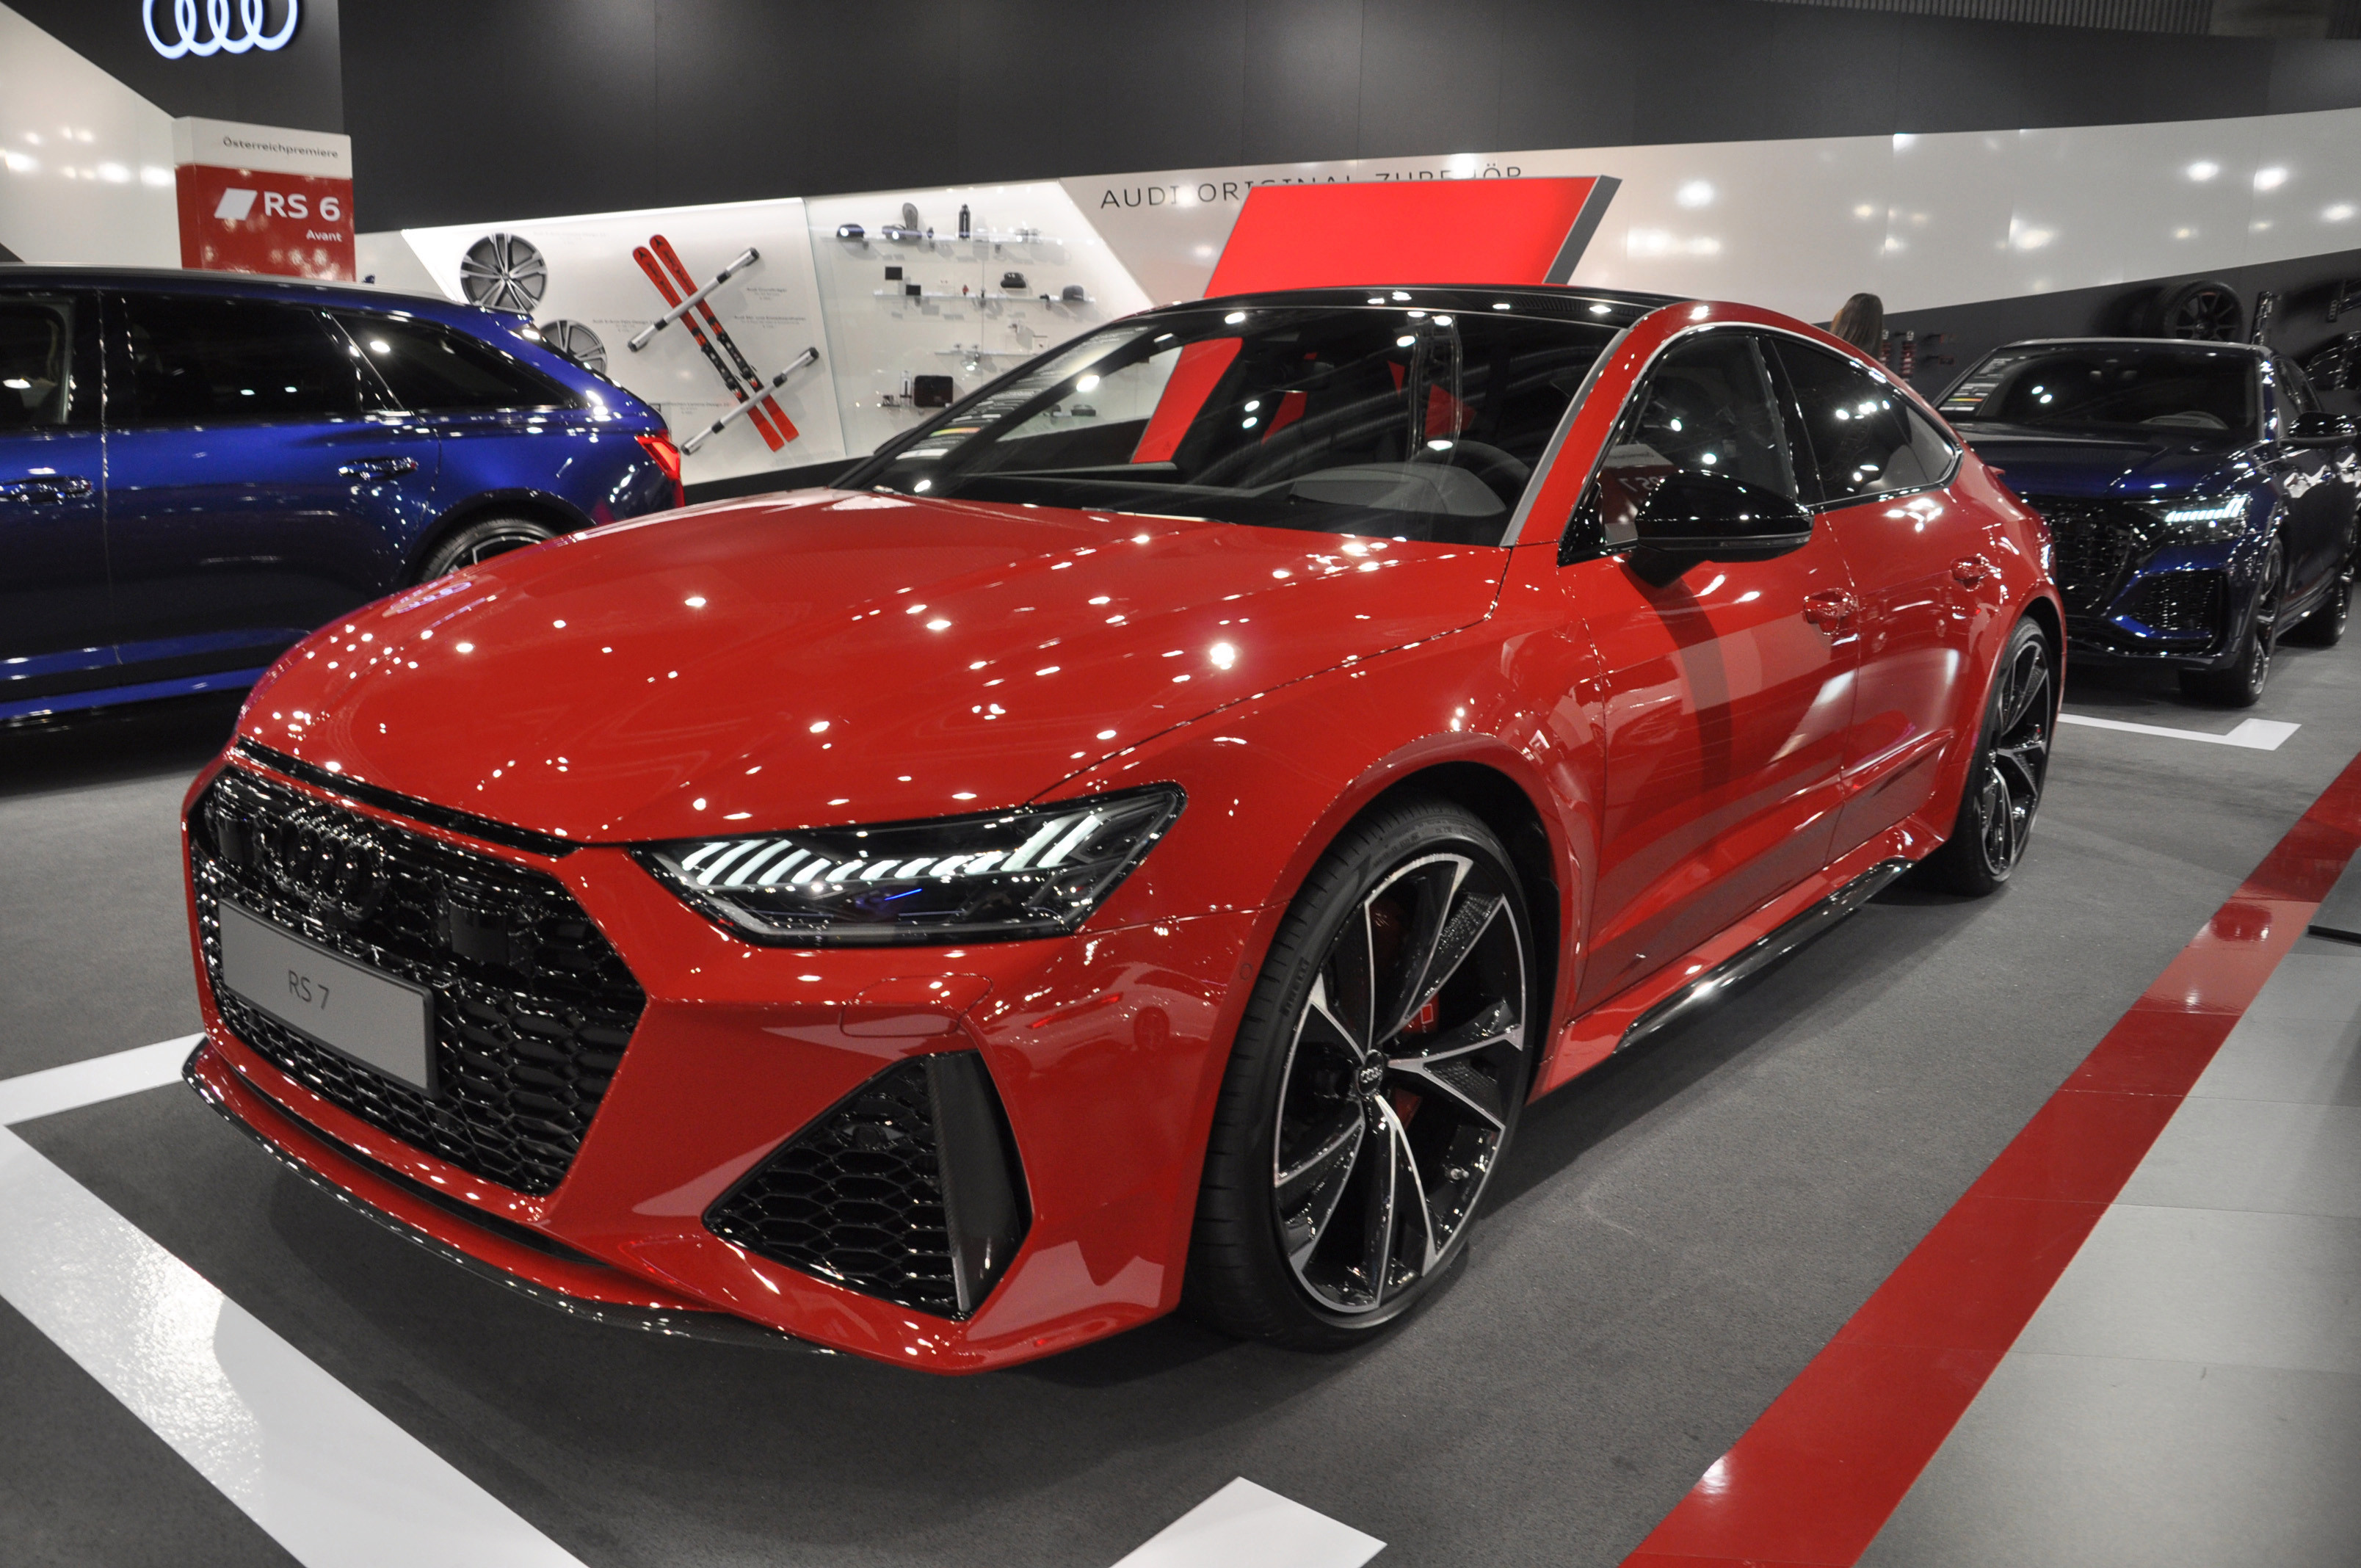 The RS7 has six individual drive-profile modes for everything from all-wheel steering to Quattro sport differential